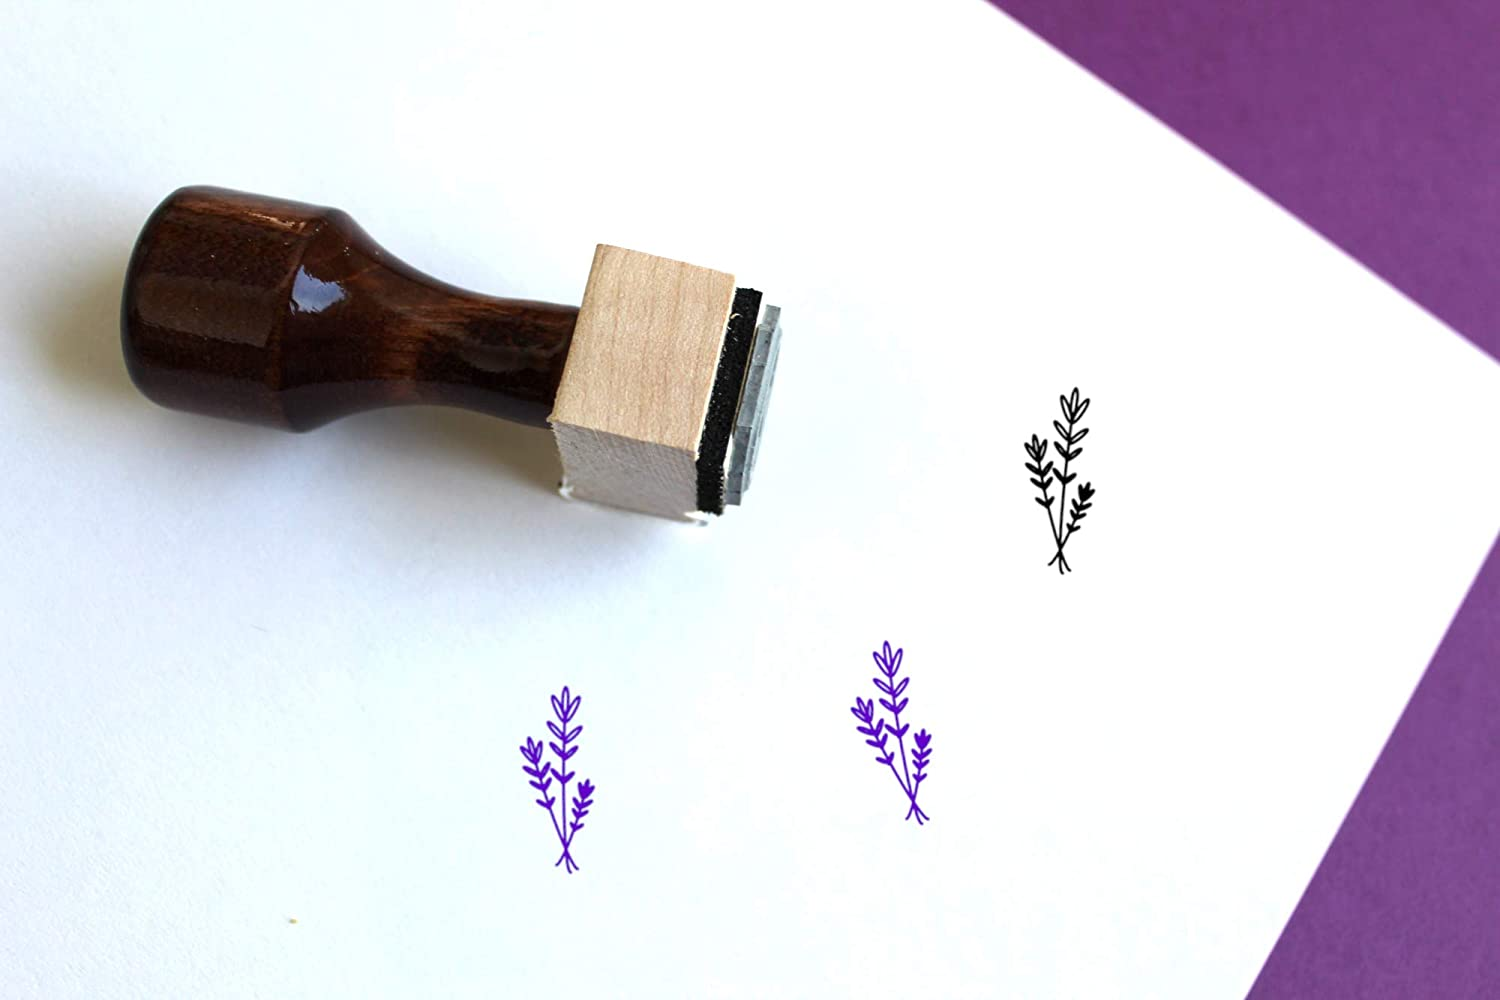 Lavender Wooden Rubber Stamp 0.5 x 0.5